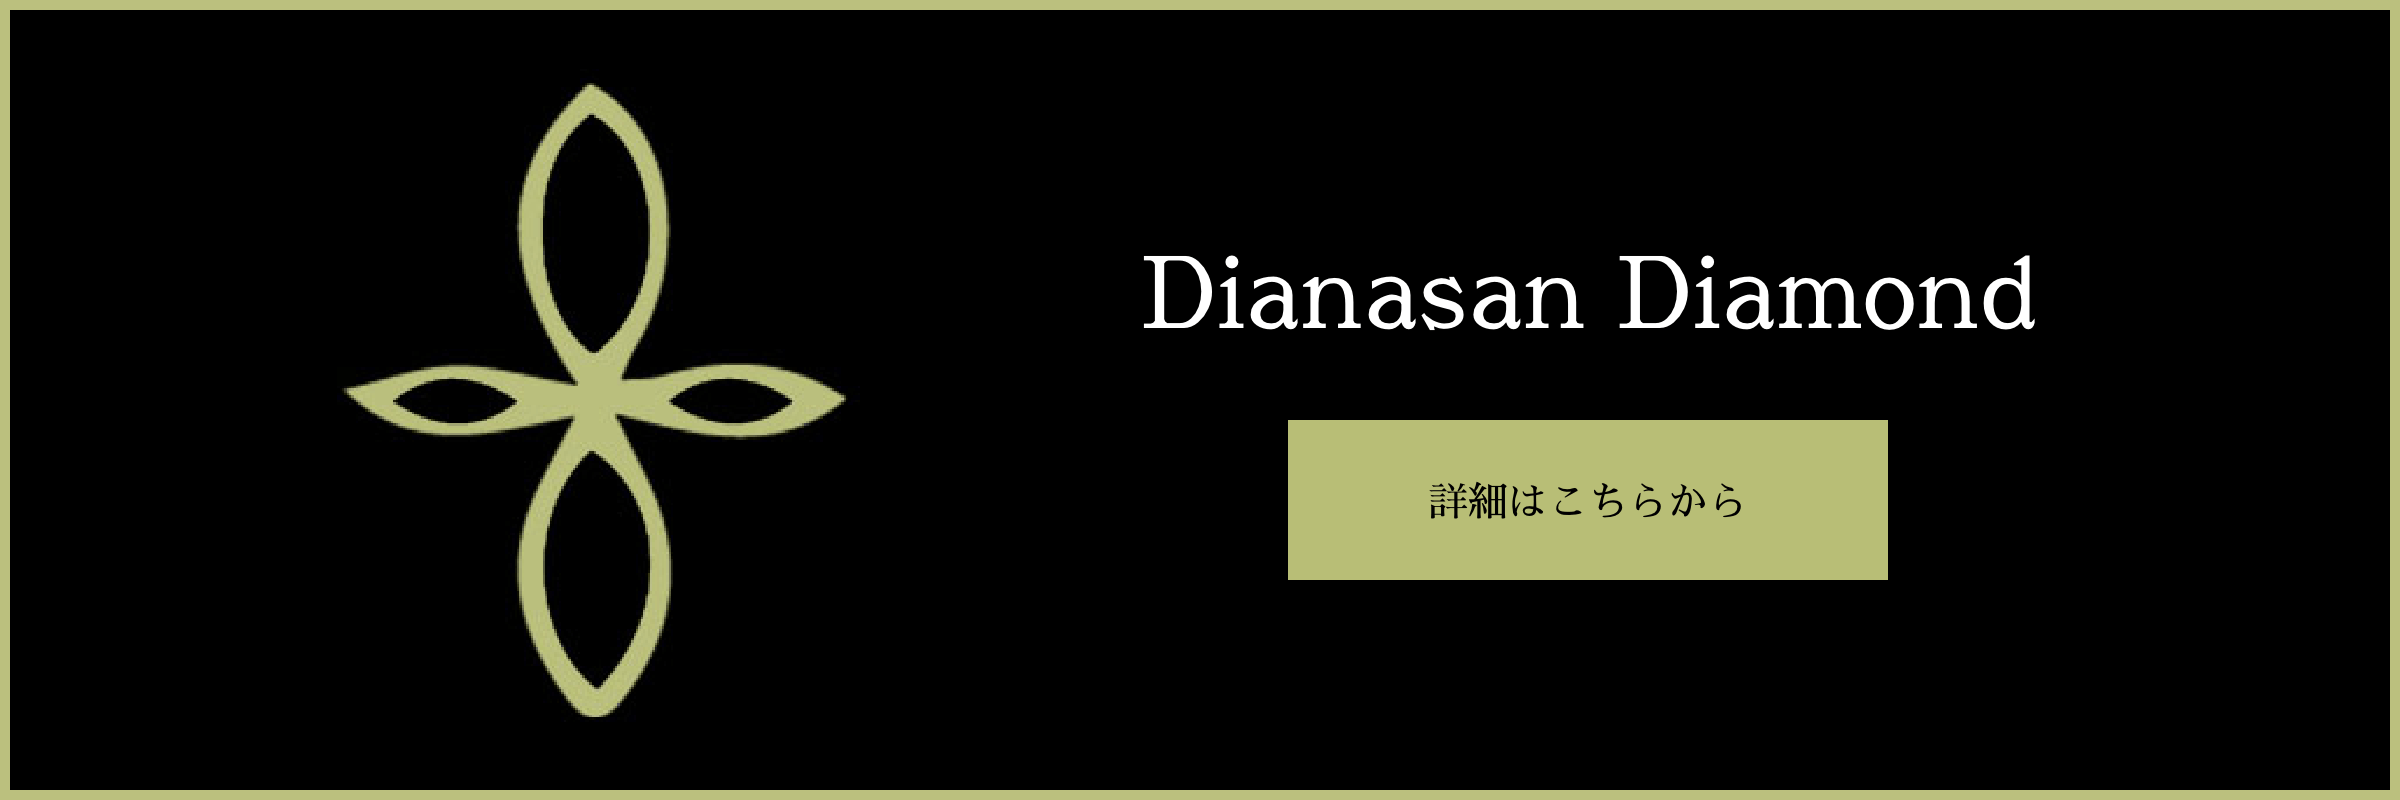 Dianasan Diamond